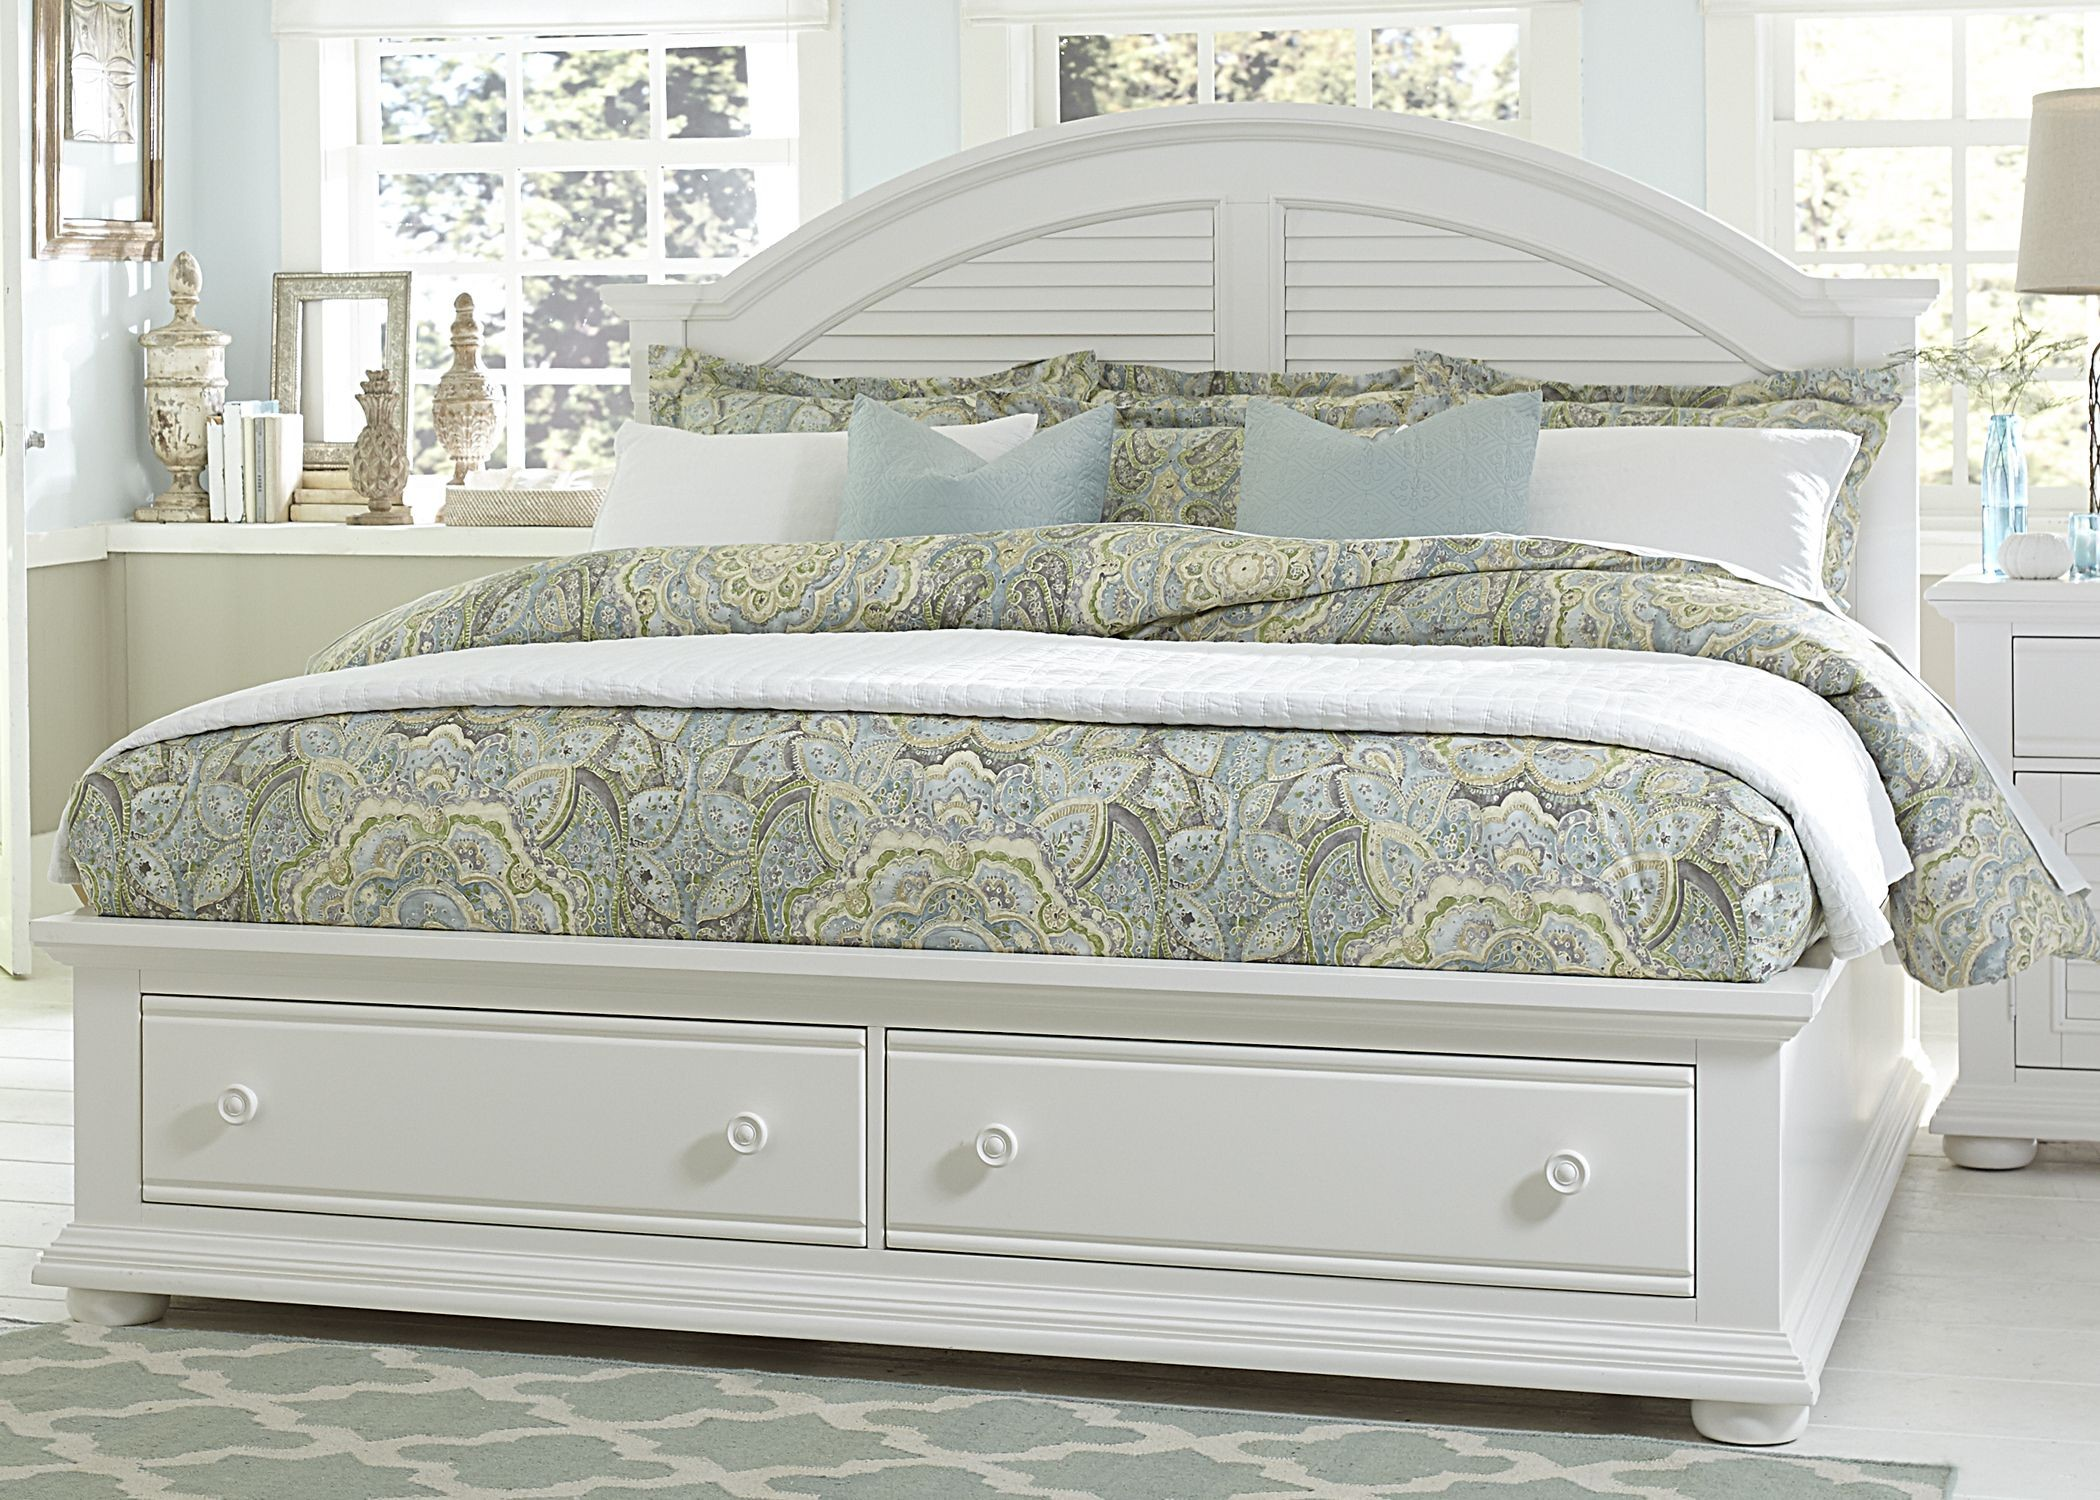 Queen Size Storage Bed Dimensions